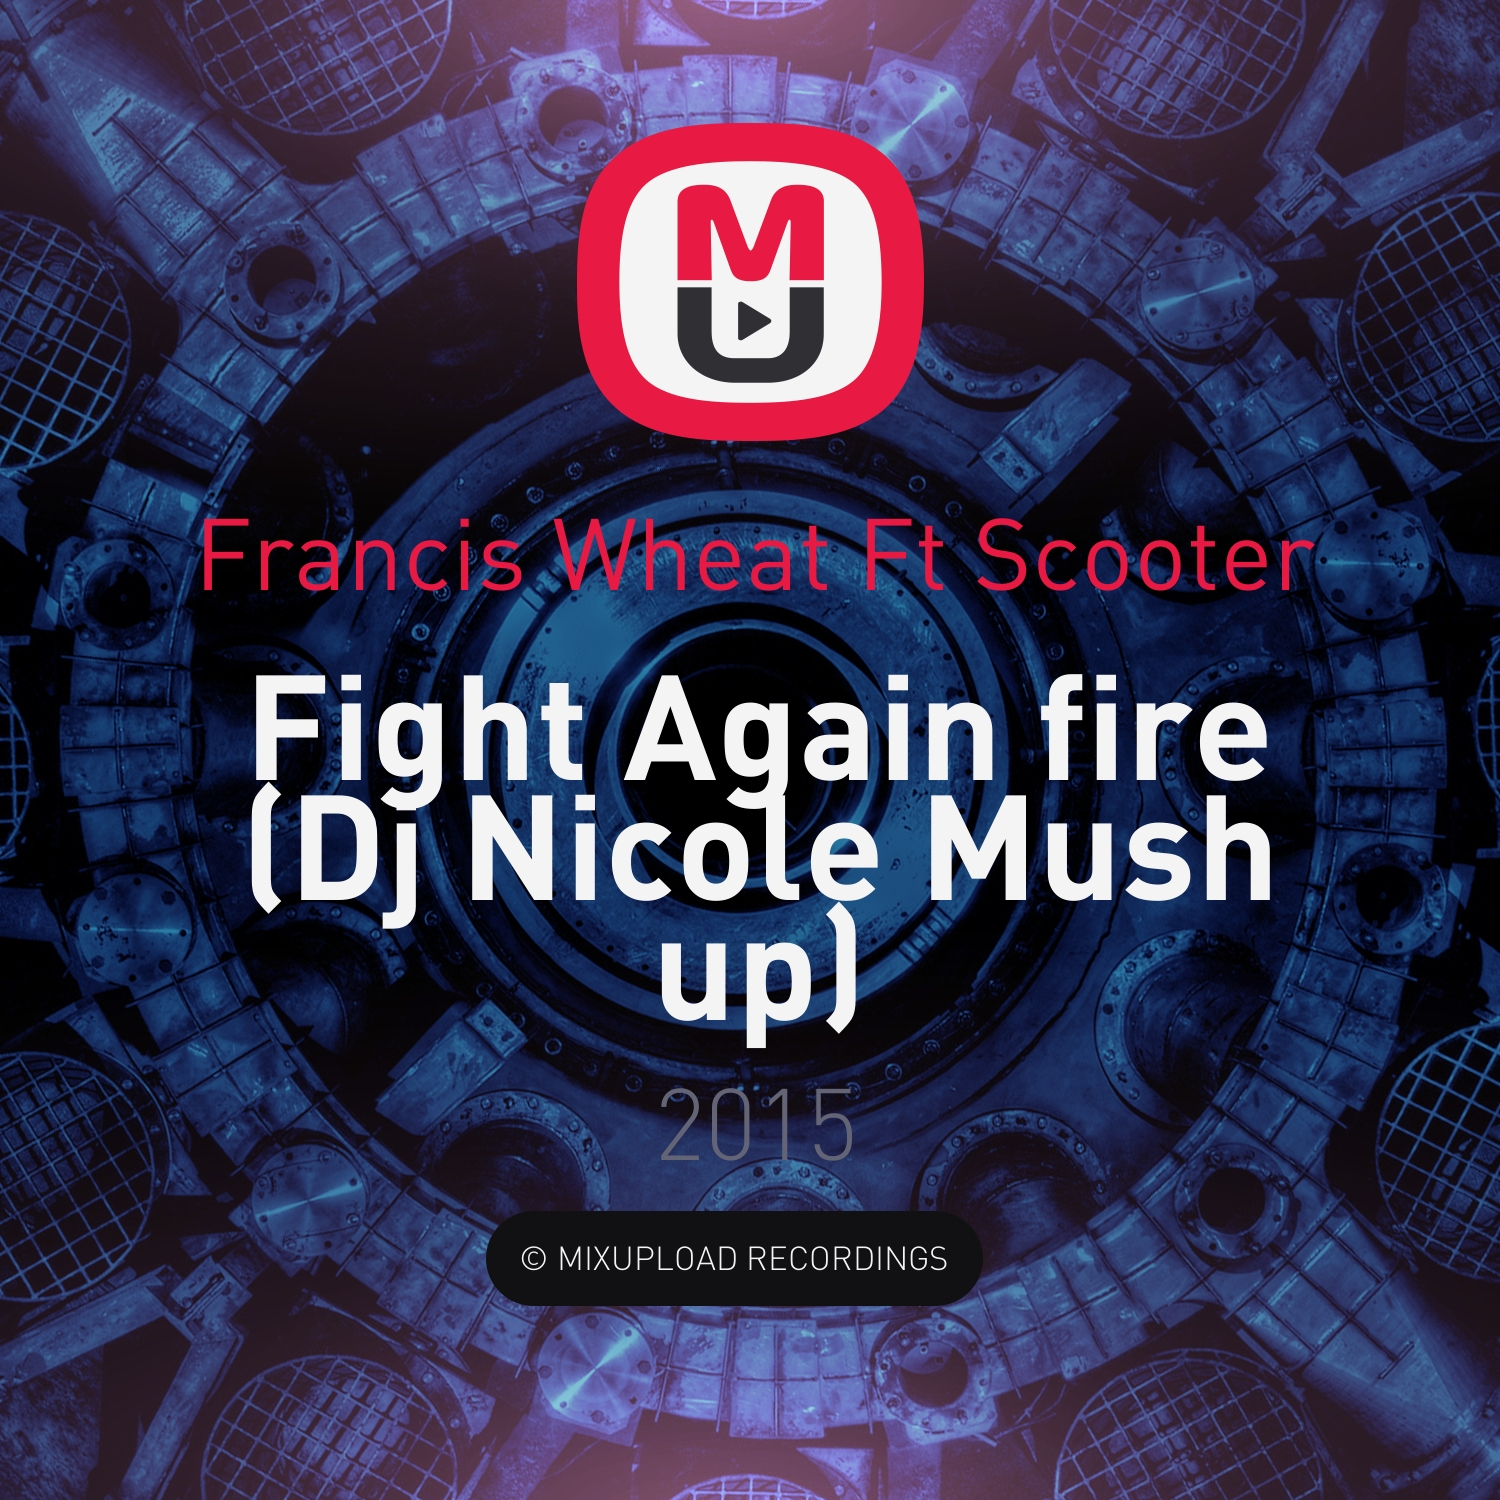 Francis Wheat Ft Scooter - Fight Again fire (Dj Nicole Mush up)